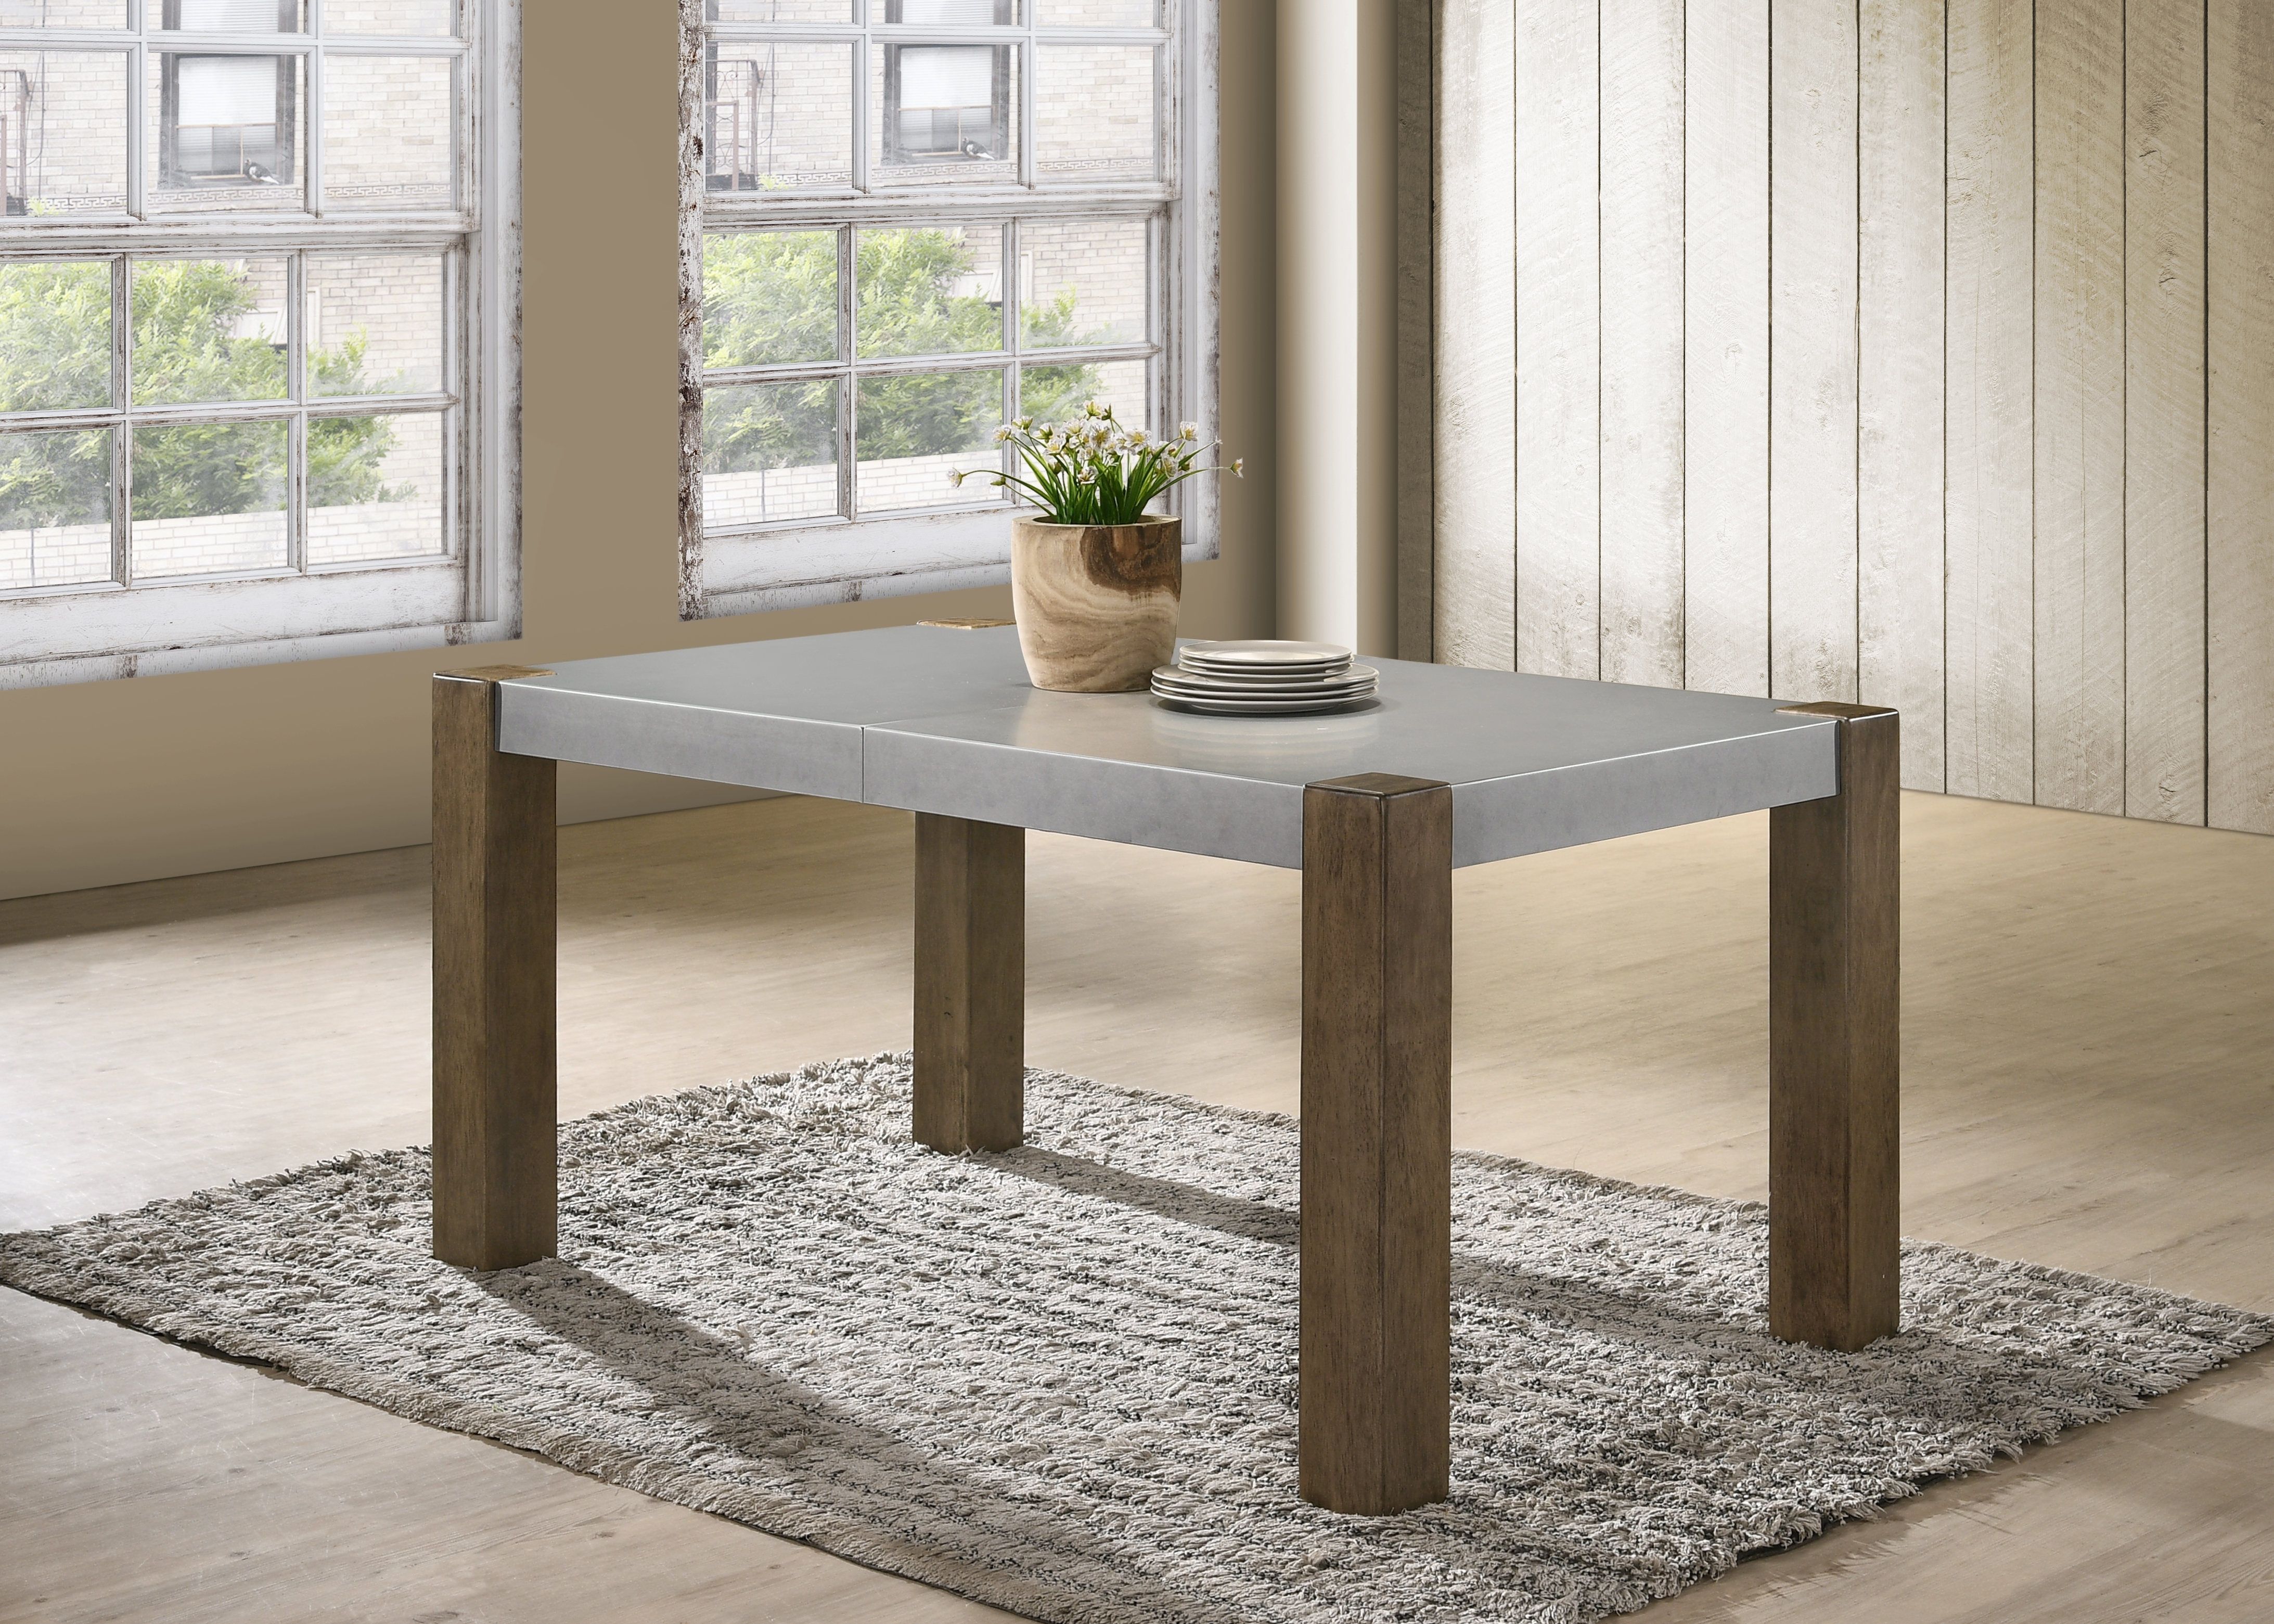 Gracie Oaks Colmont Butterfly Leaf Dining Table | Wayfair In Most Recent Teagan Extension Dining Tables (Image 8 of 20)